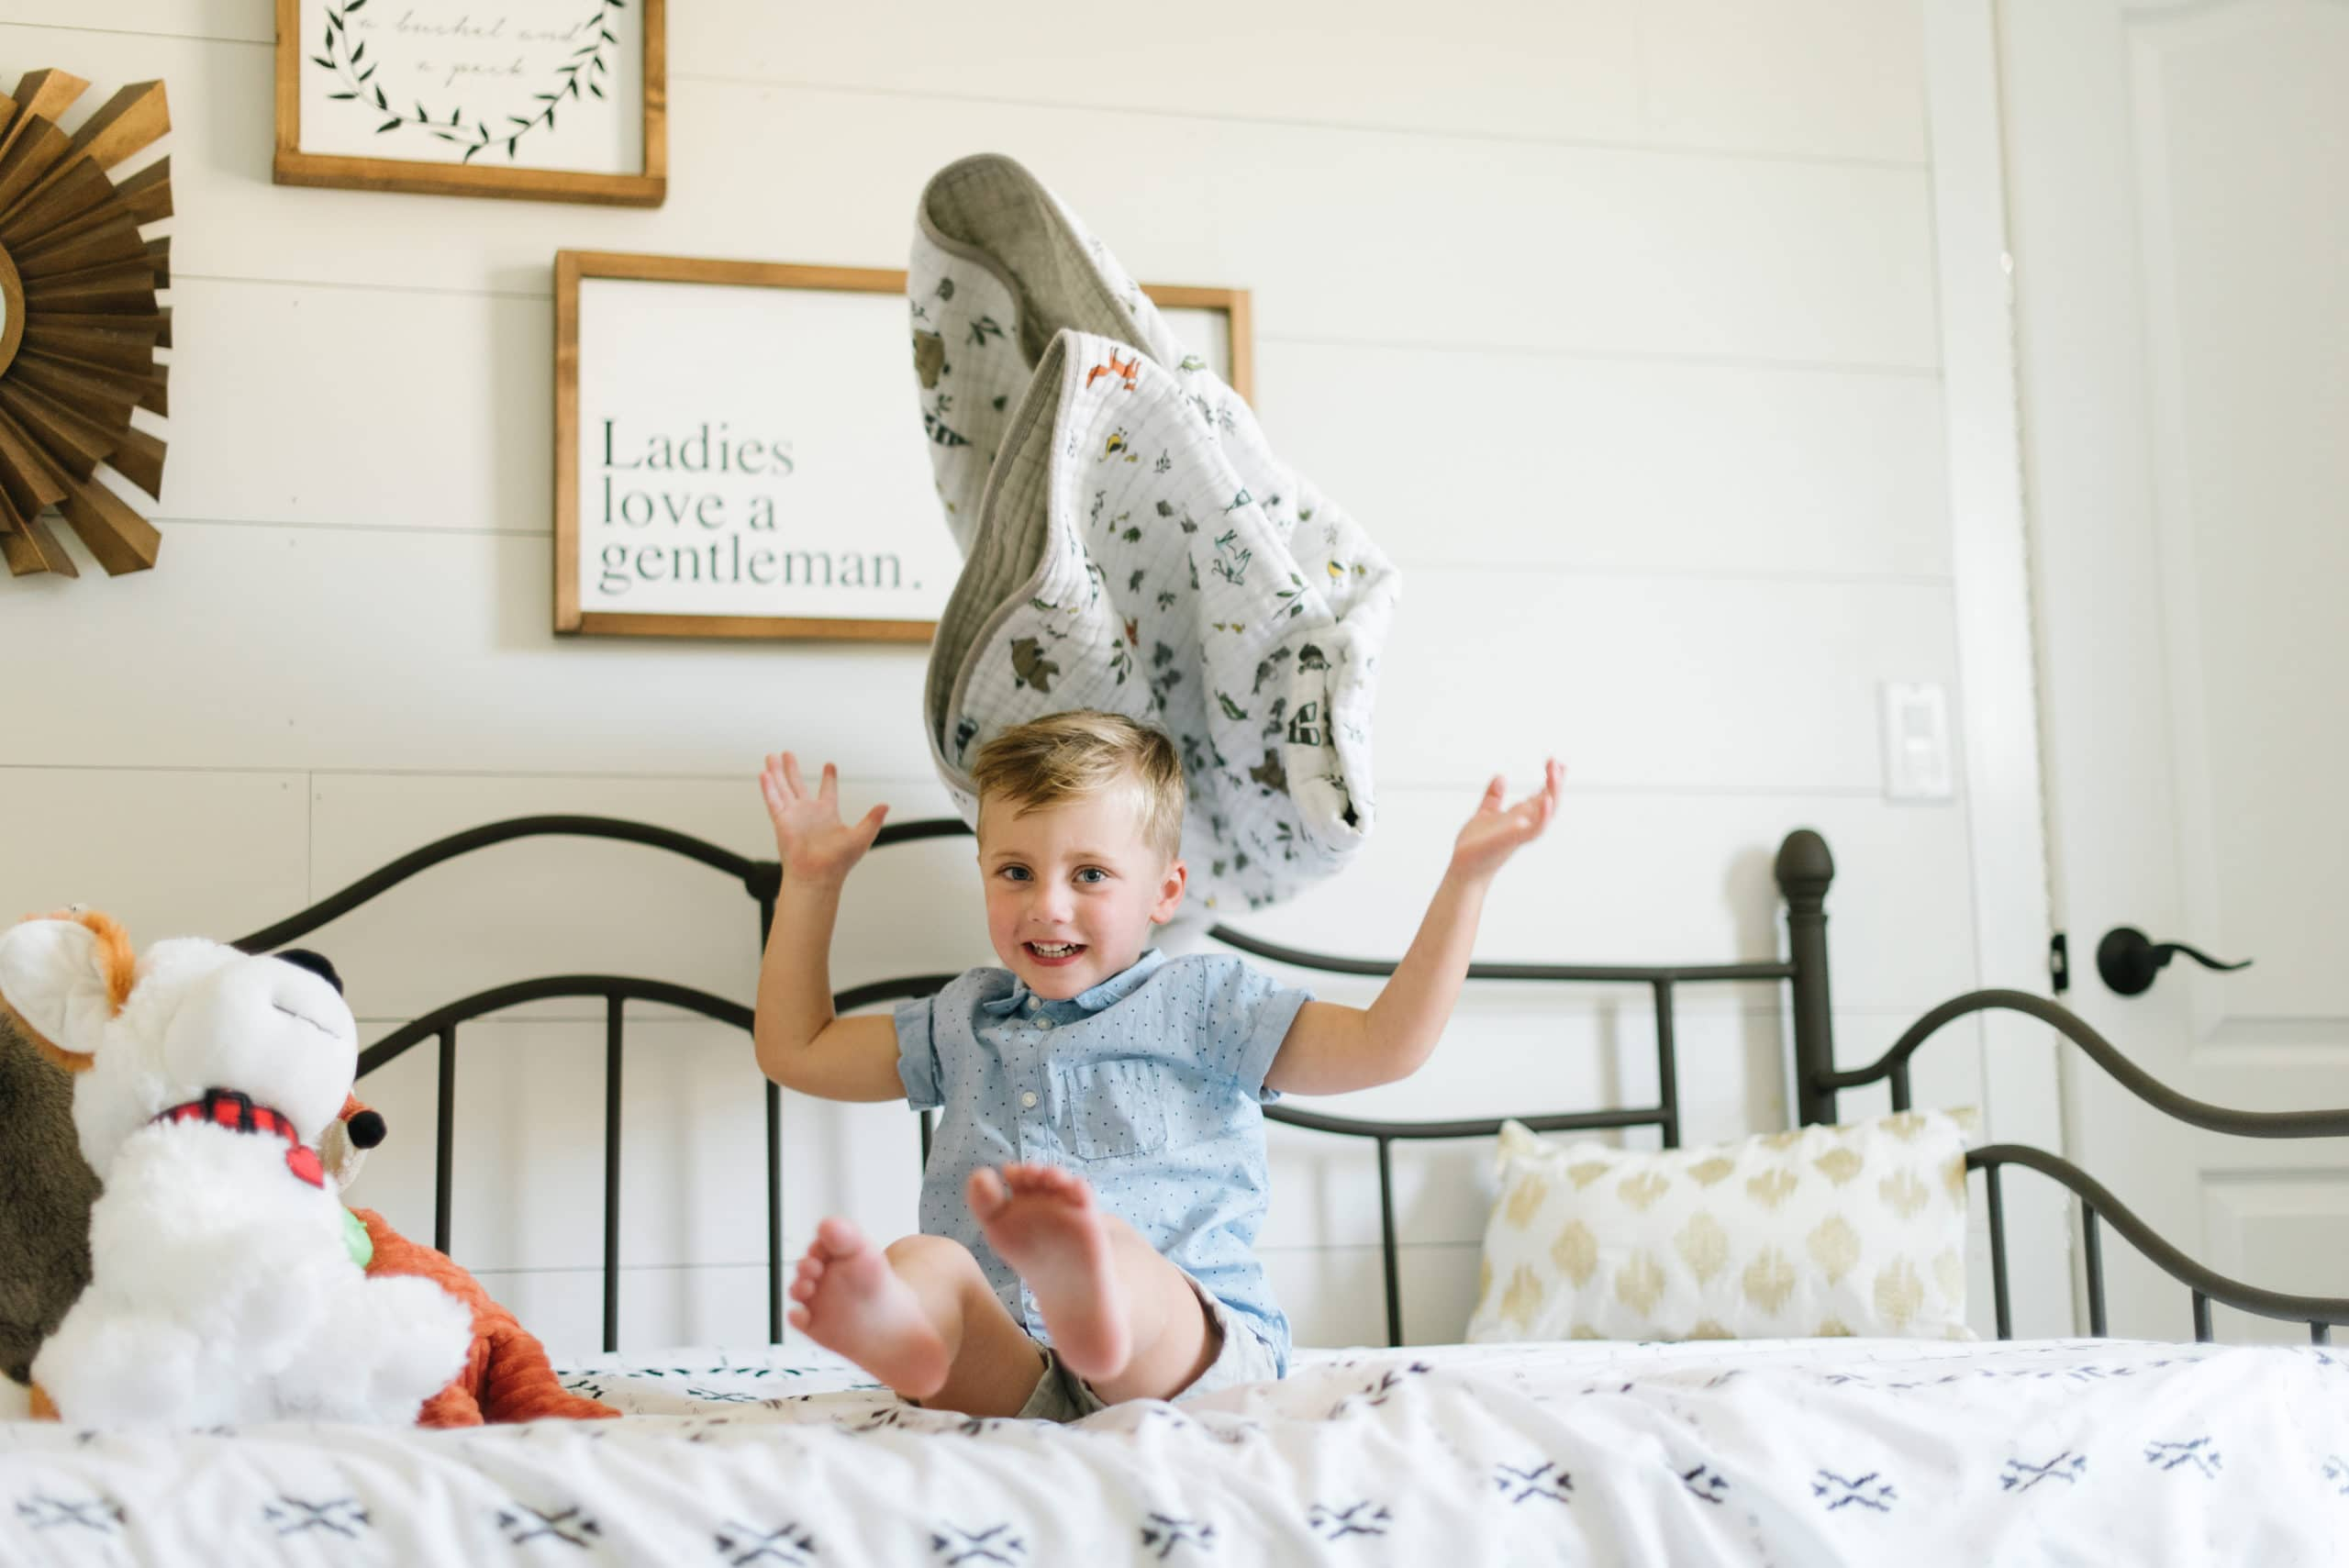 a photo of a young boy sitting on his bef throwing his blanket up in the air